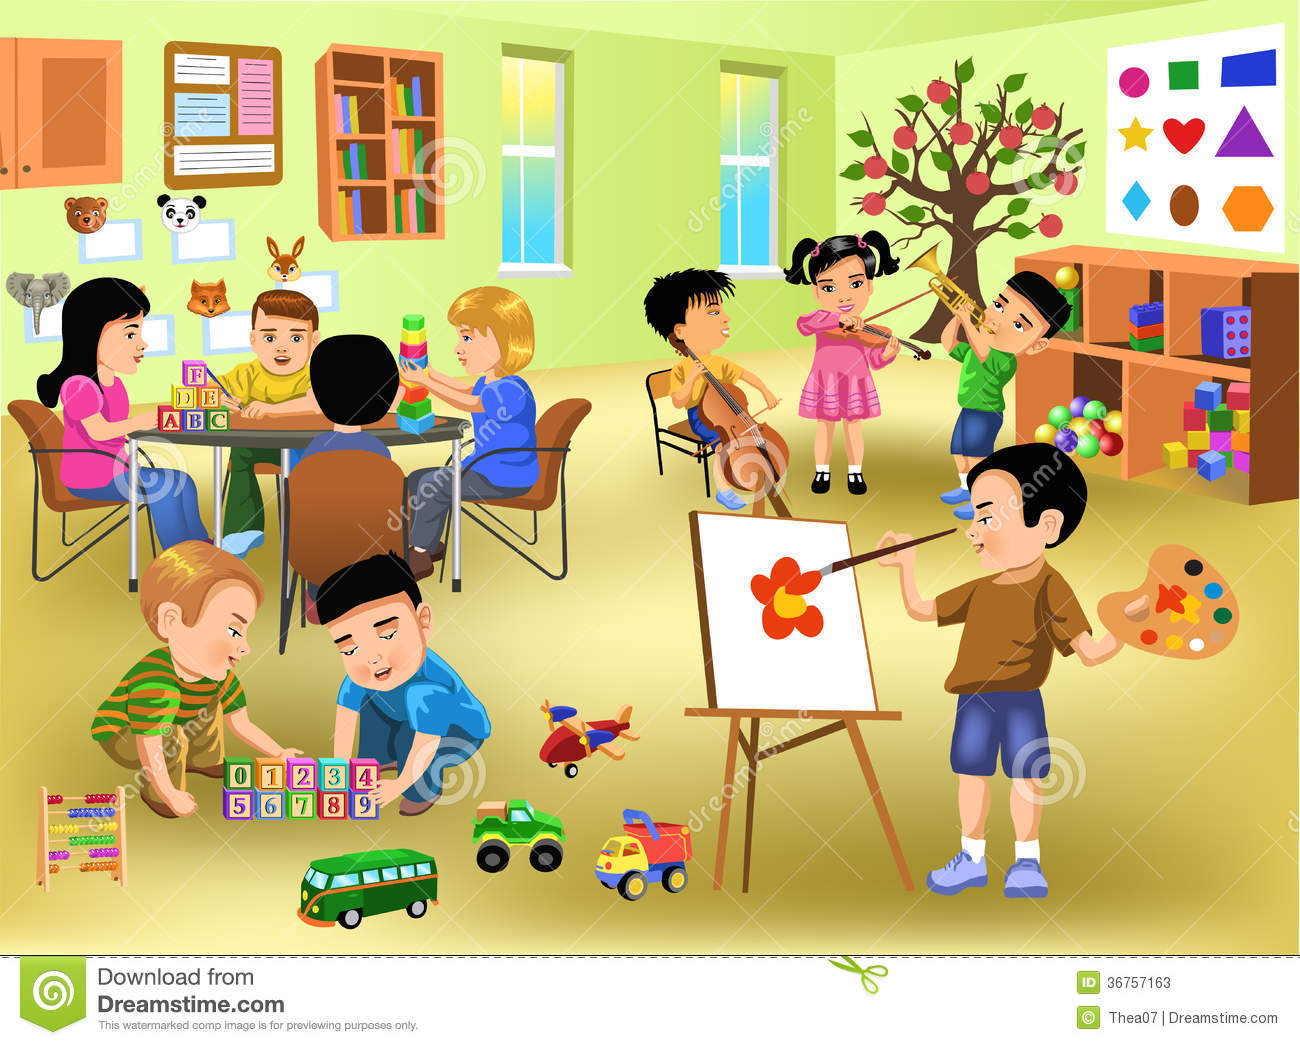 Activities clipart in school.  collection of kids